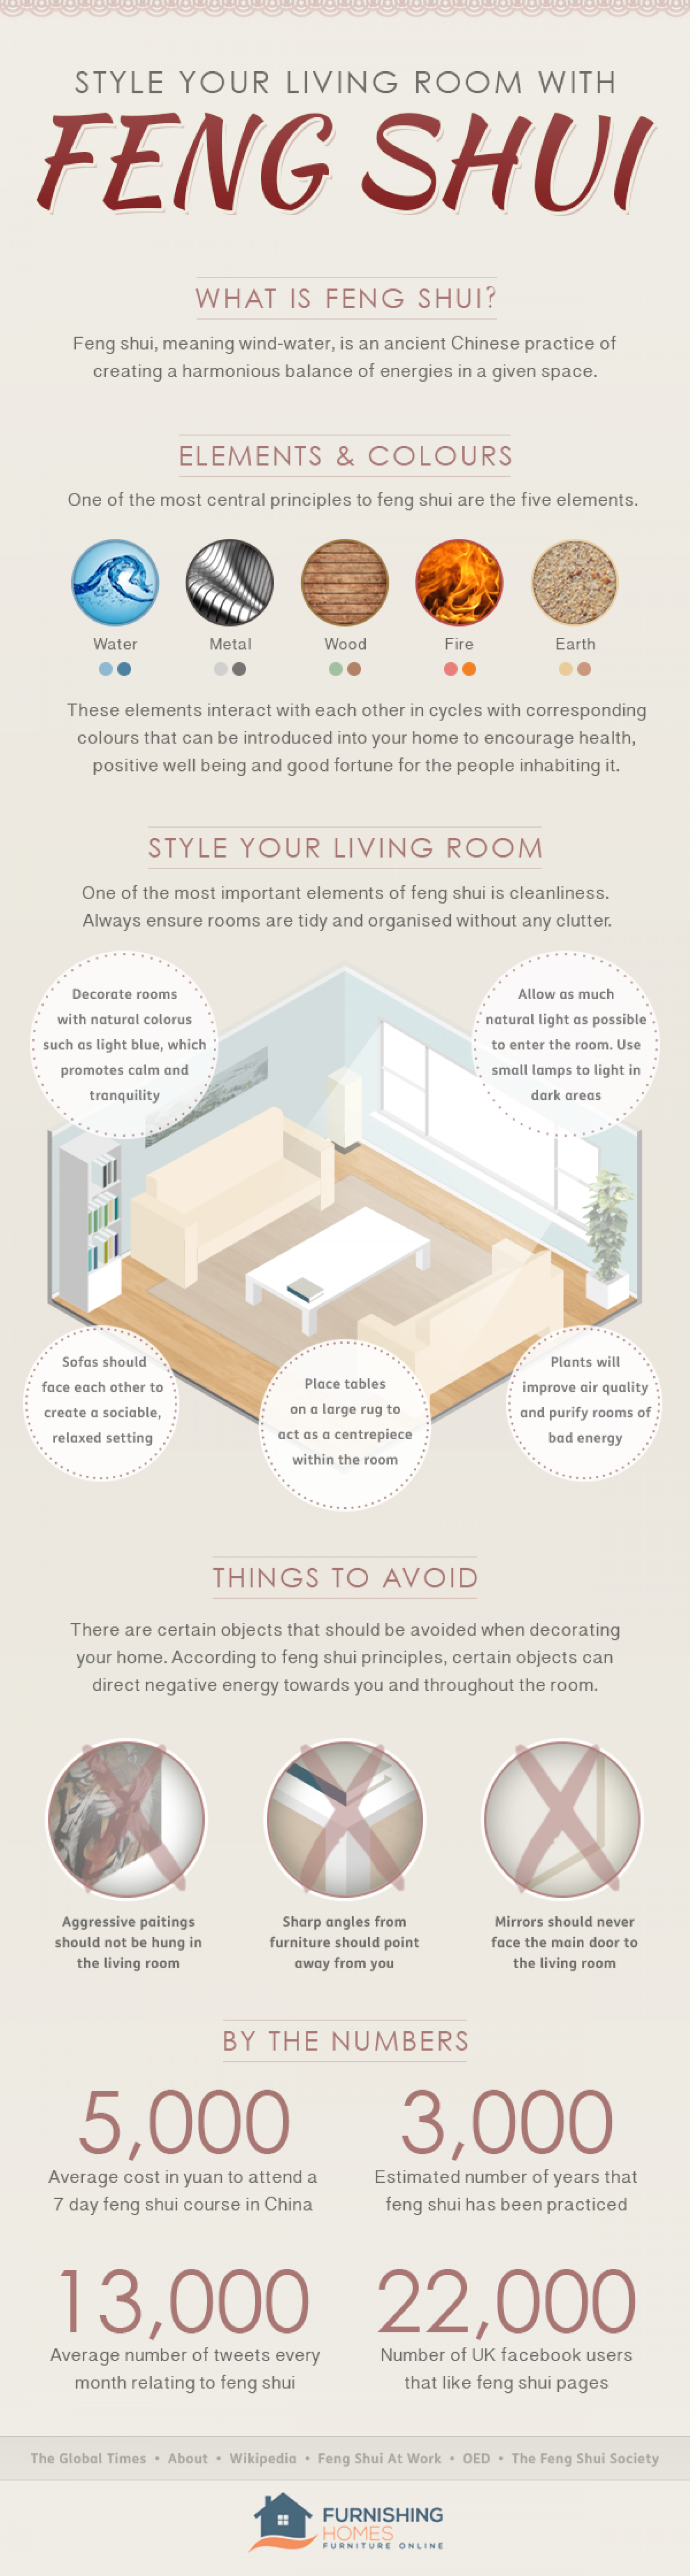 Style your room with feng shui Infographic